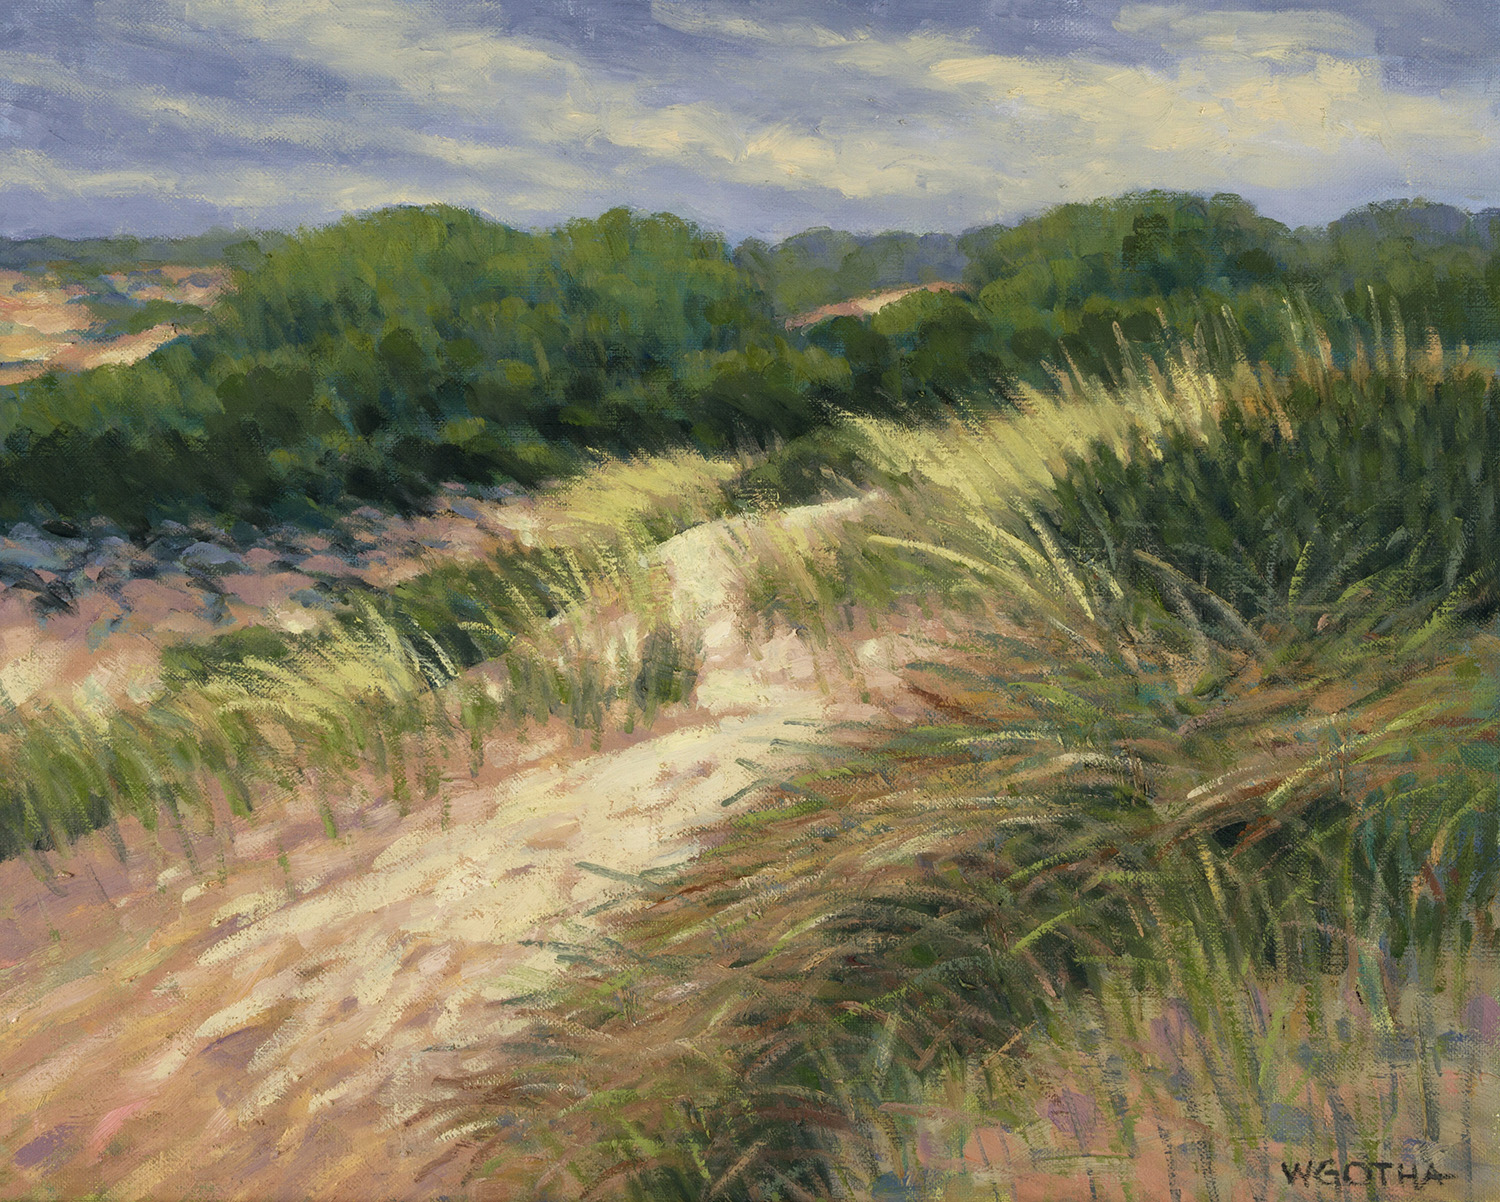 Dunes at Chapin's   (Dennis) 16 x 20 Oil by William Gotha $1650